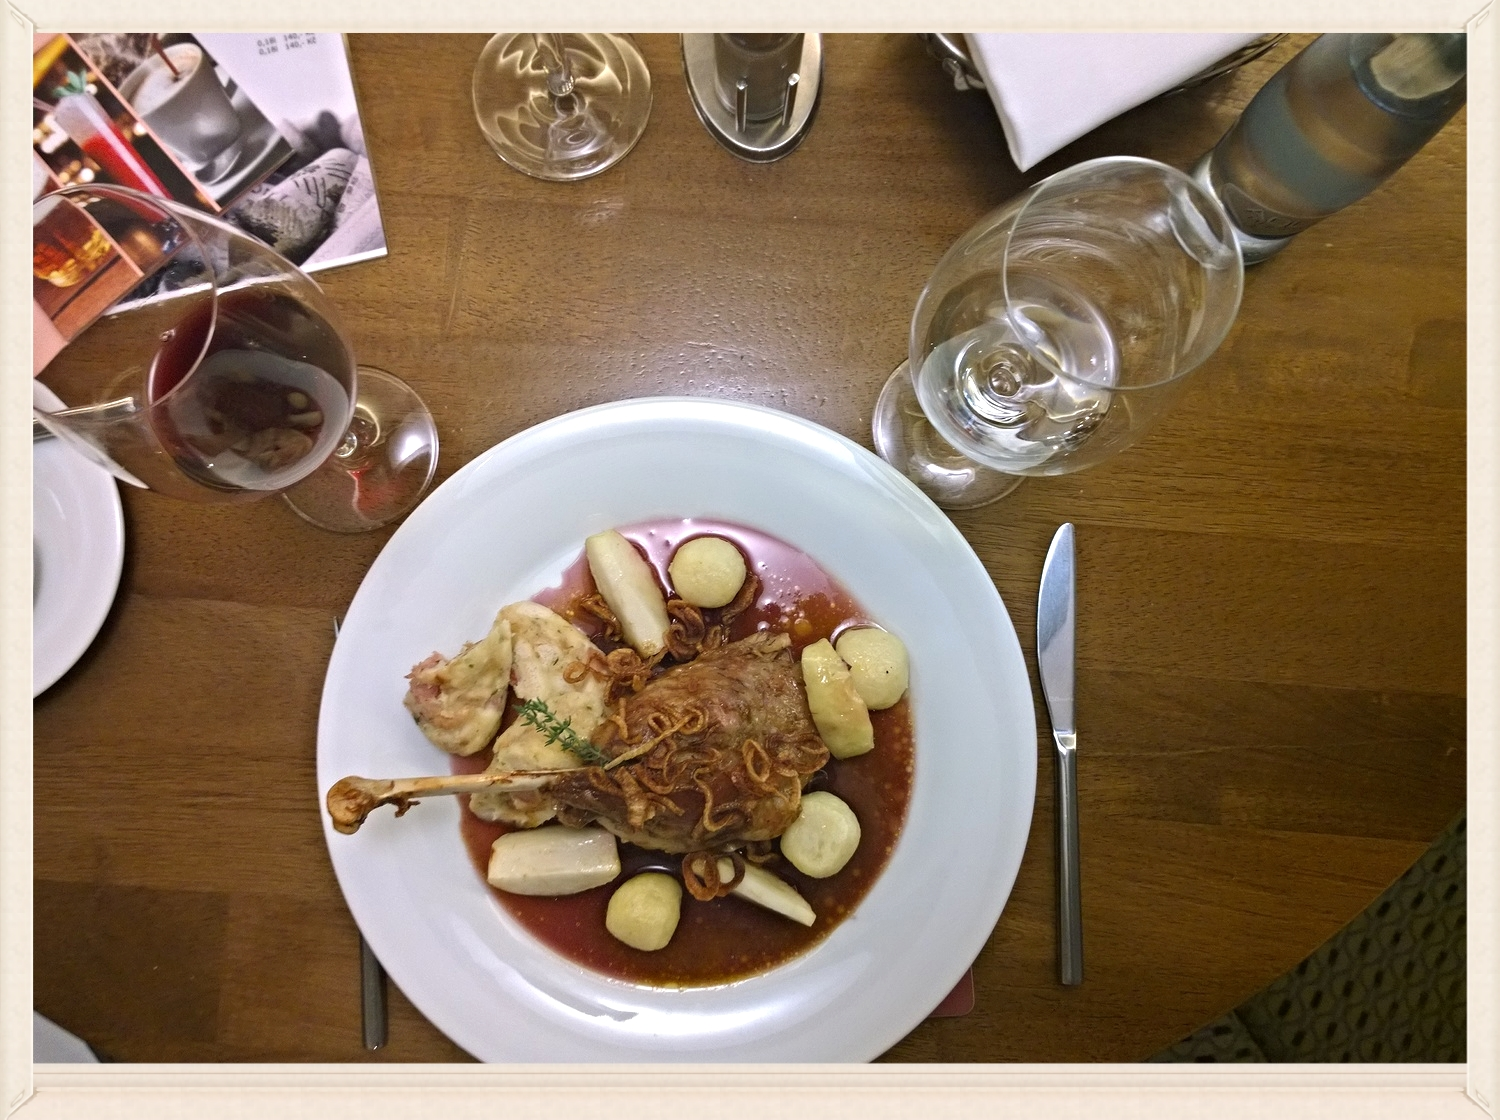 Roasted goose leg with apples, potato dumplings and red sauerkraut pared with a local Czech red wine.